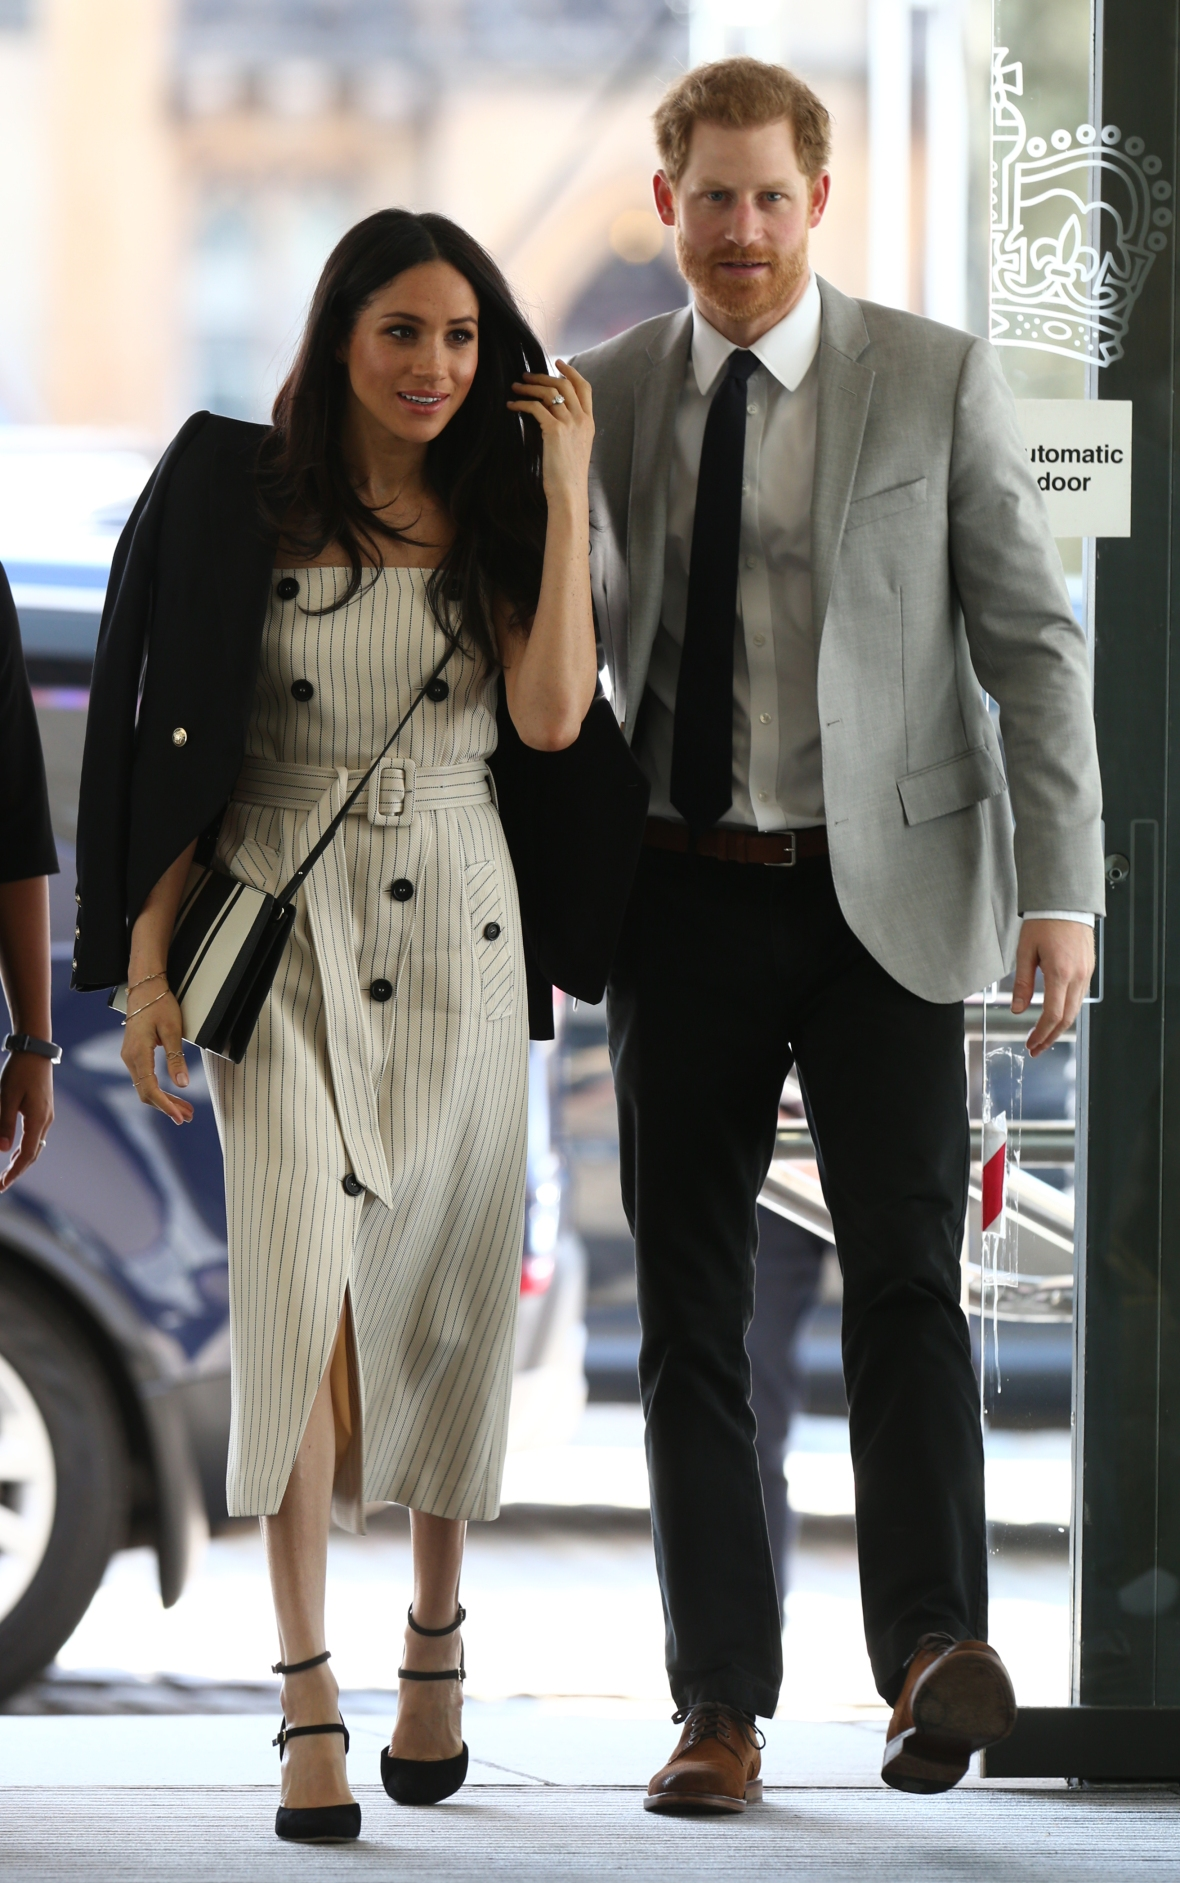 Meghan Markle S Skinny Legs Haters Critique The Duchess